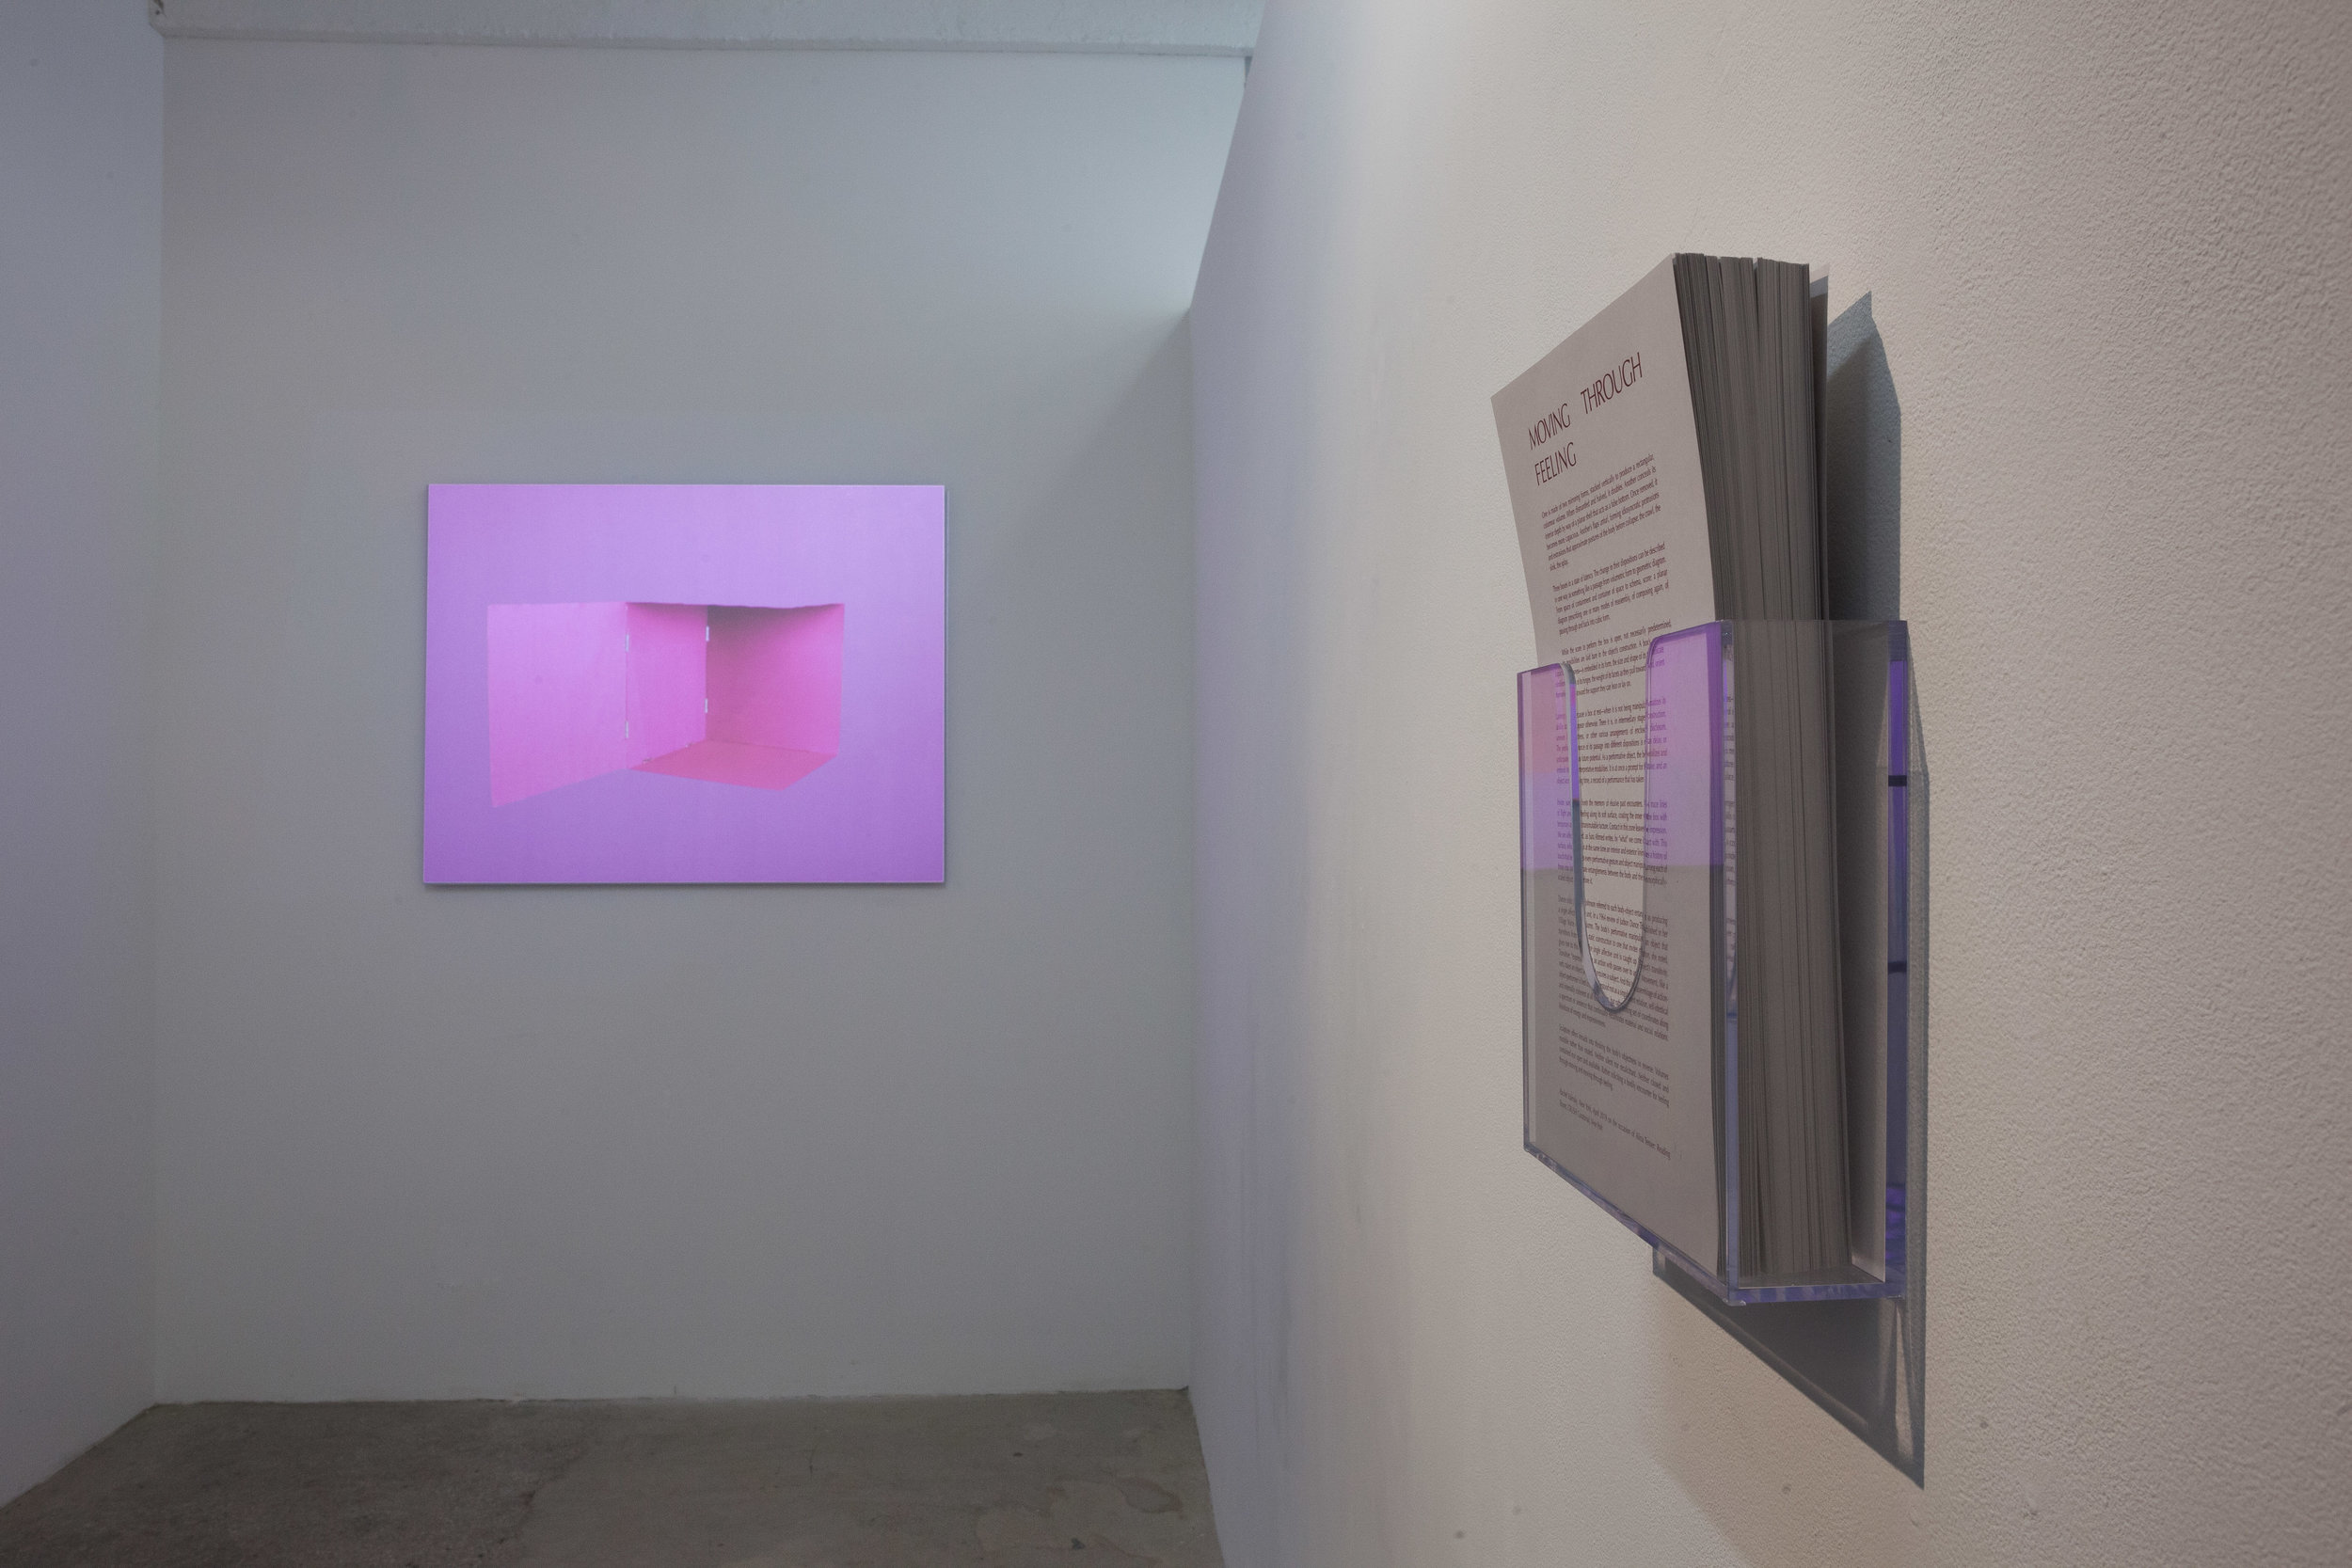 Ampersand Box (installation view)